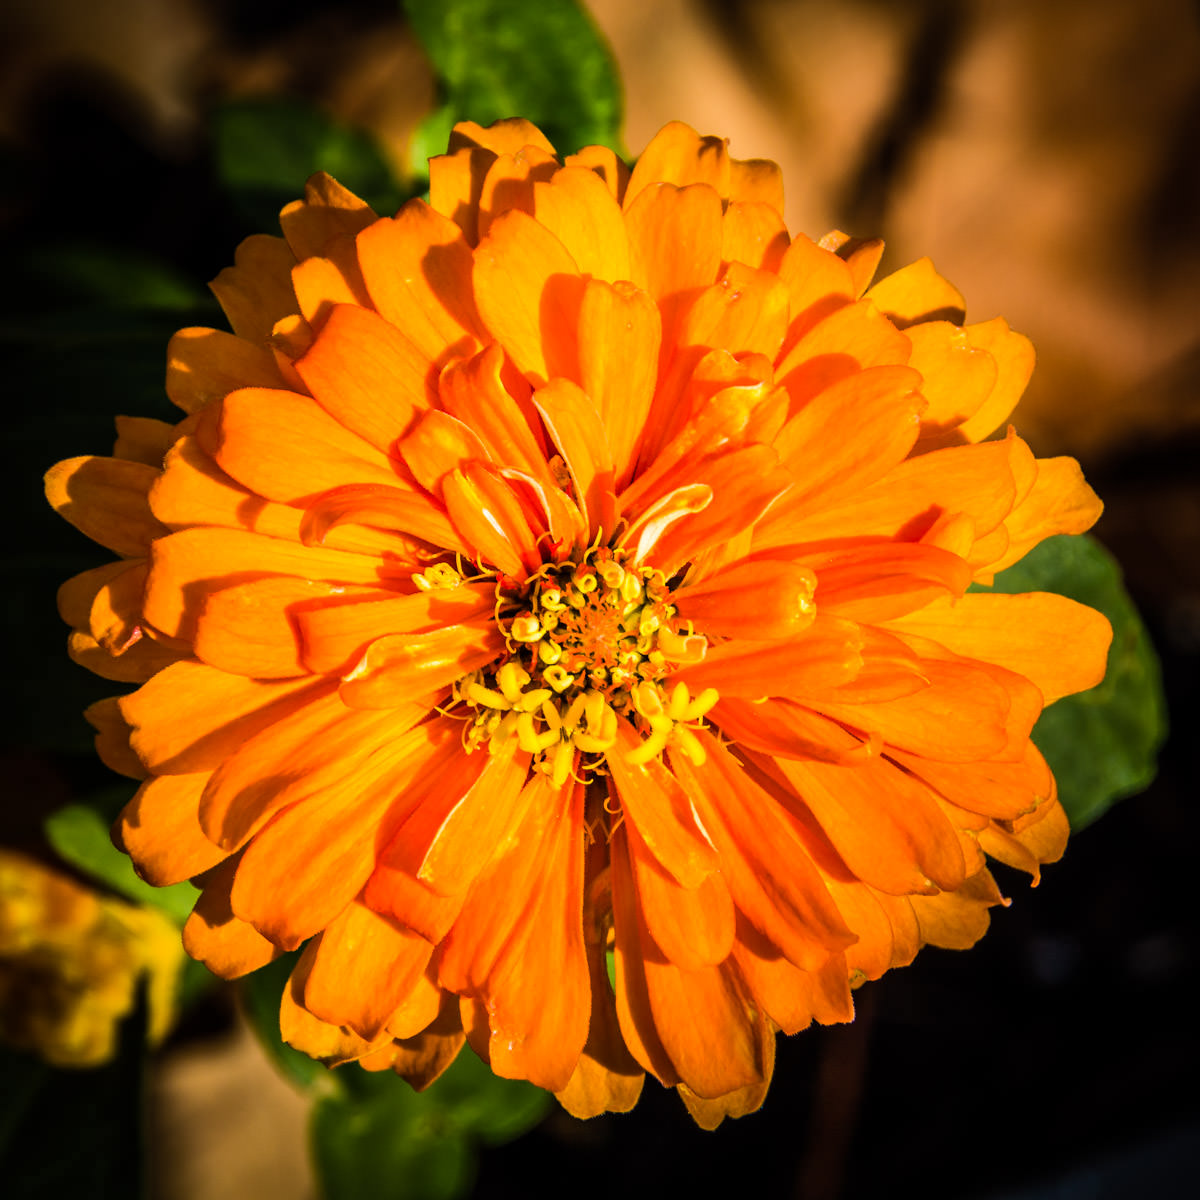 An orange flower spotted in Plano, Texas.